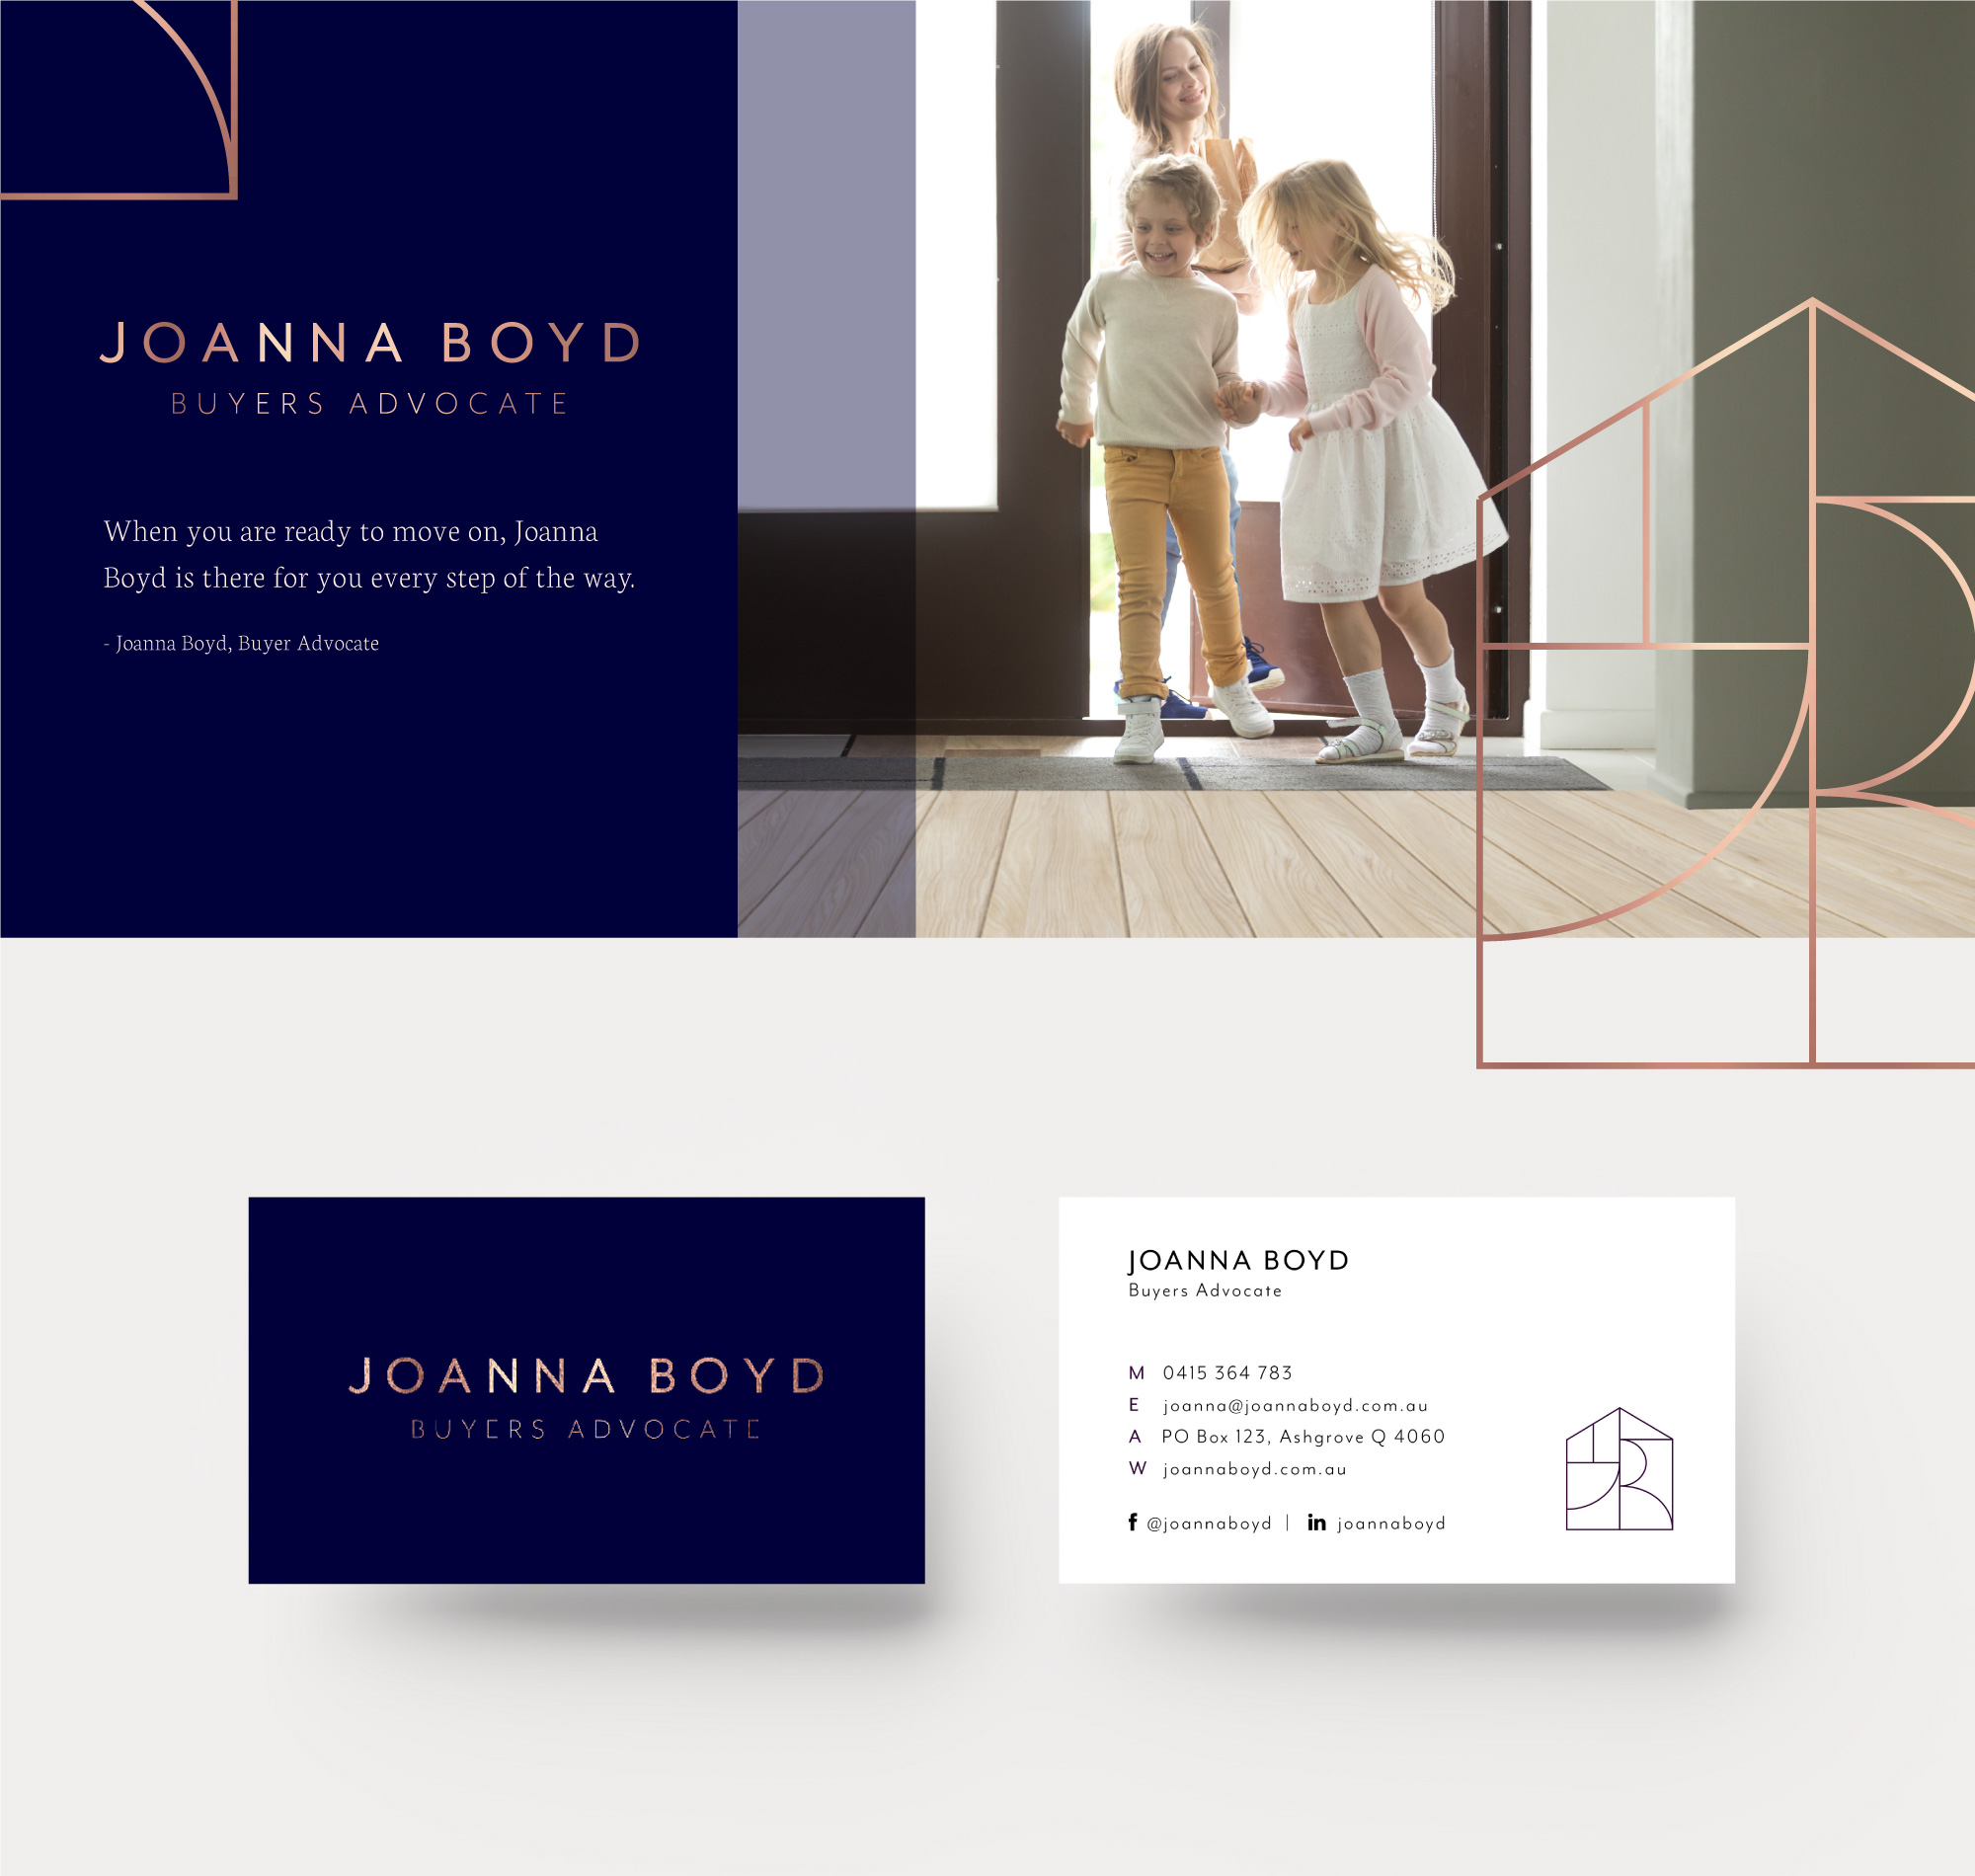 Branding strategy and brand visual identity project for Joanna Boyd Buyers Advocate by Sketch Corp.